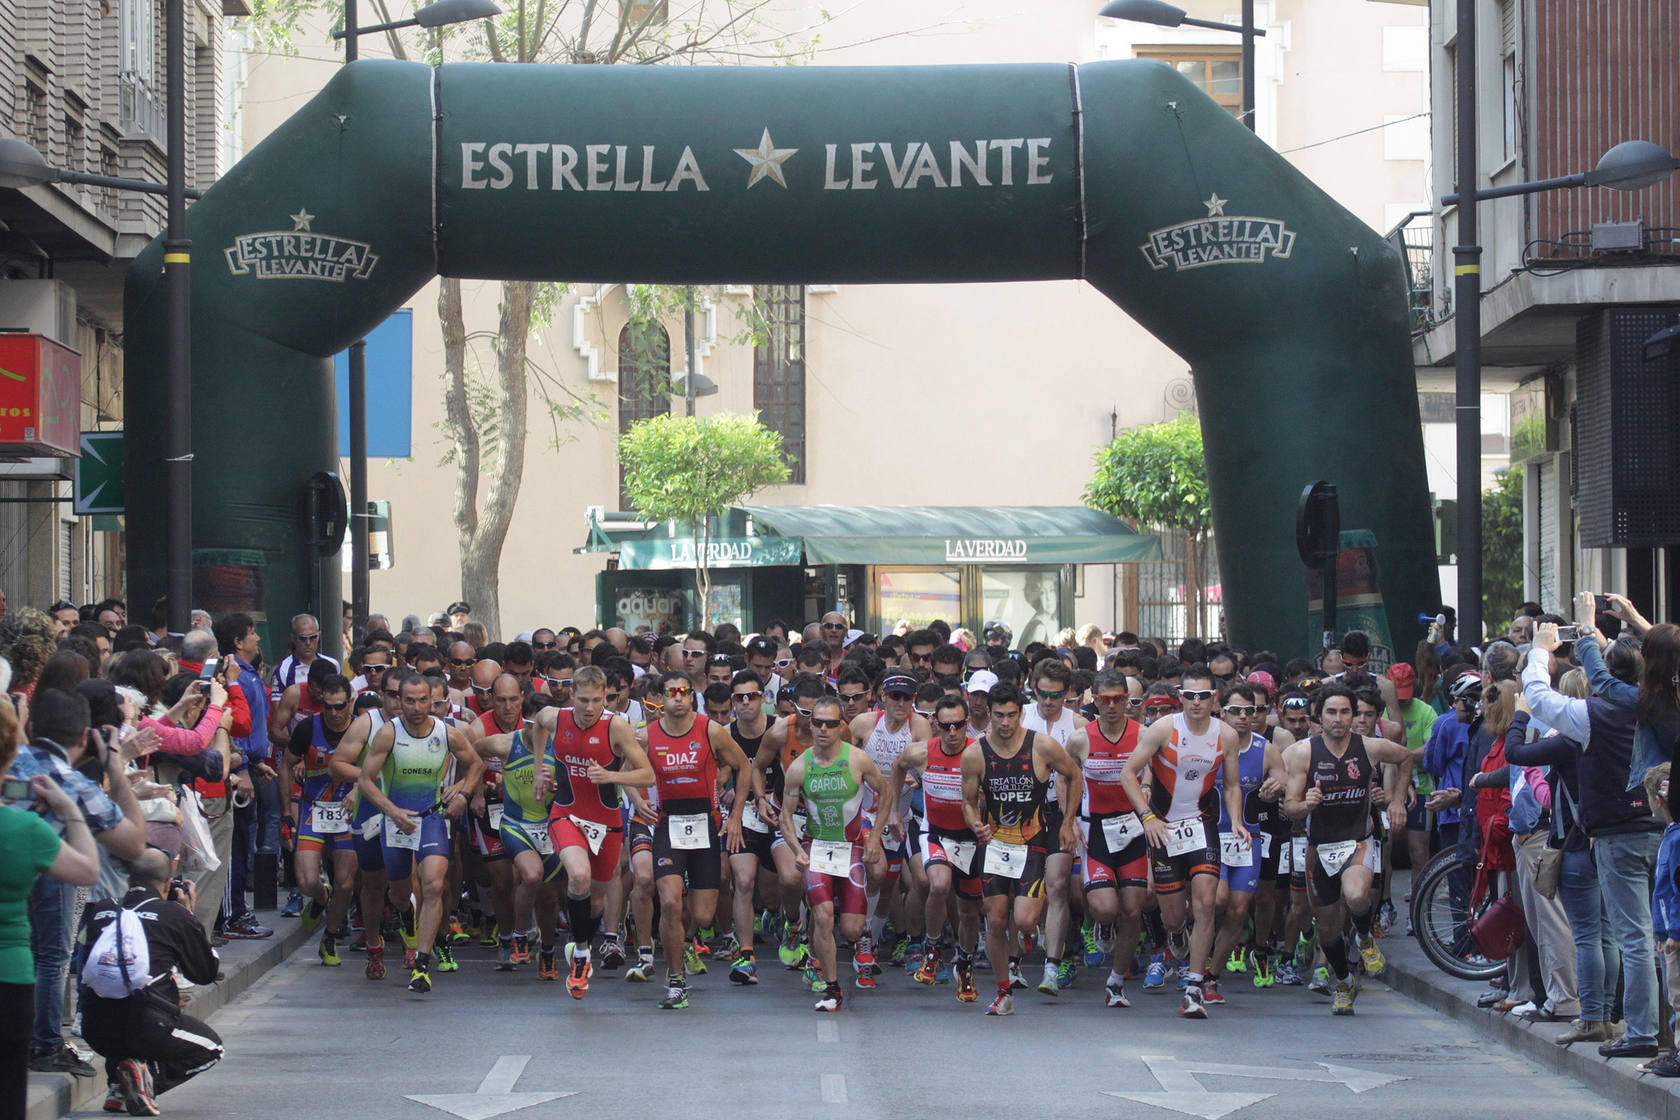 II edici&oacute;n del Duatl&oacute;n Ciudad de Murcia